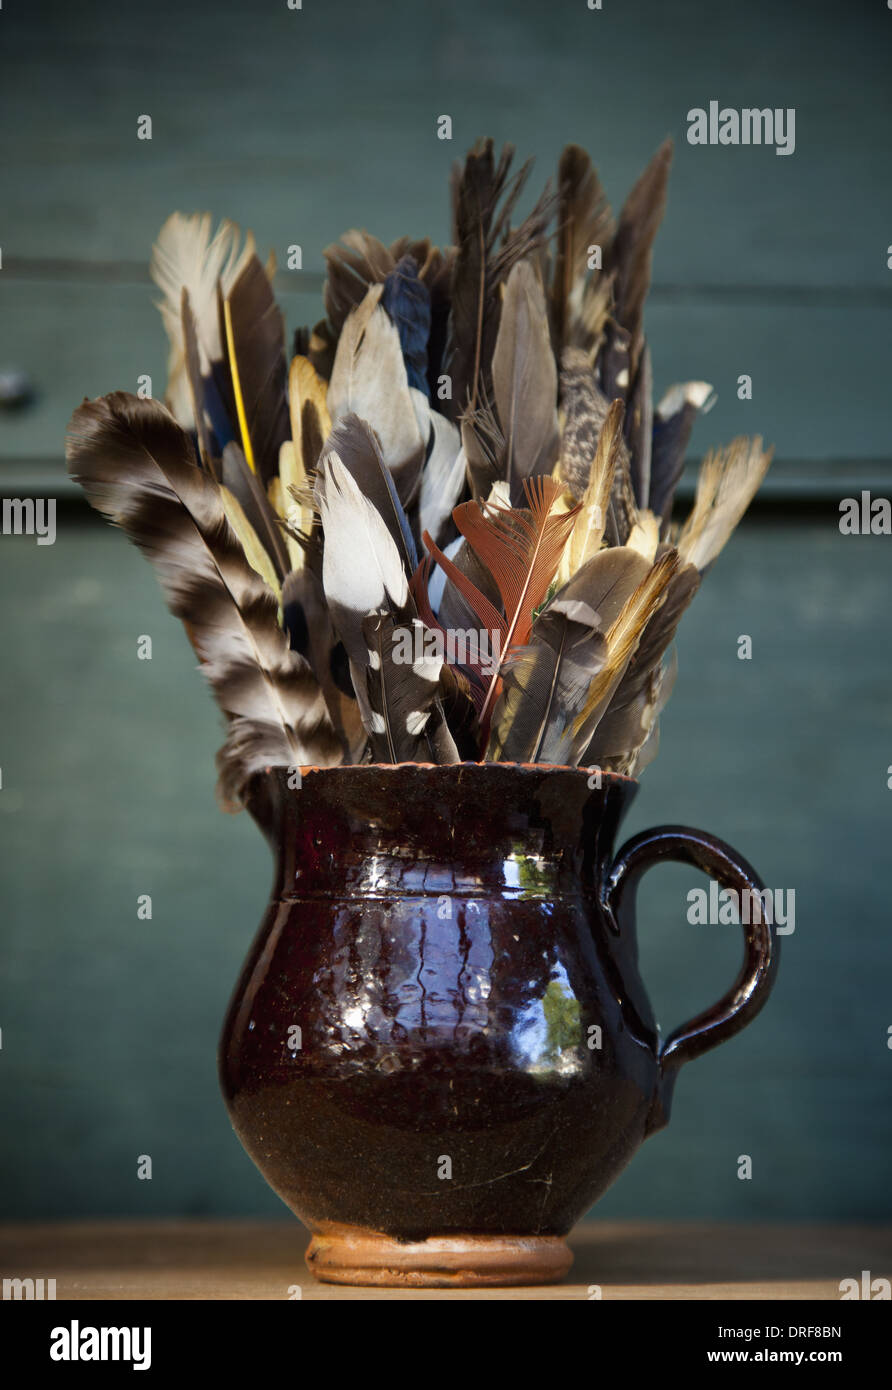 Maryland USA collection of bird feathers in brown pottery jug - Stock Image